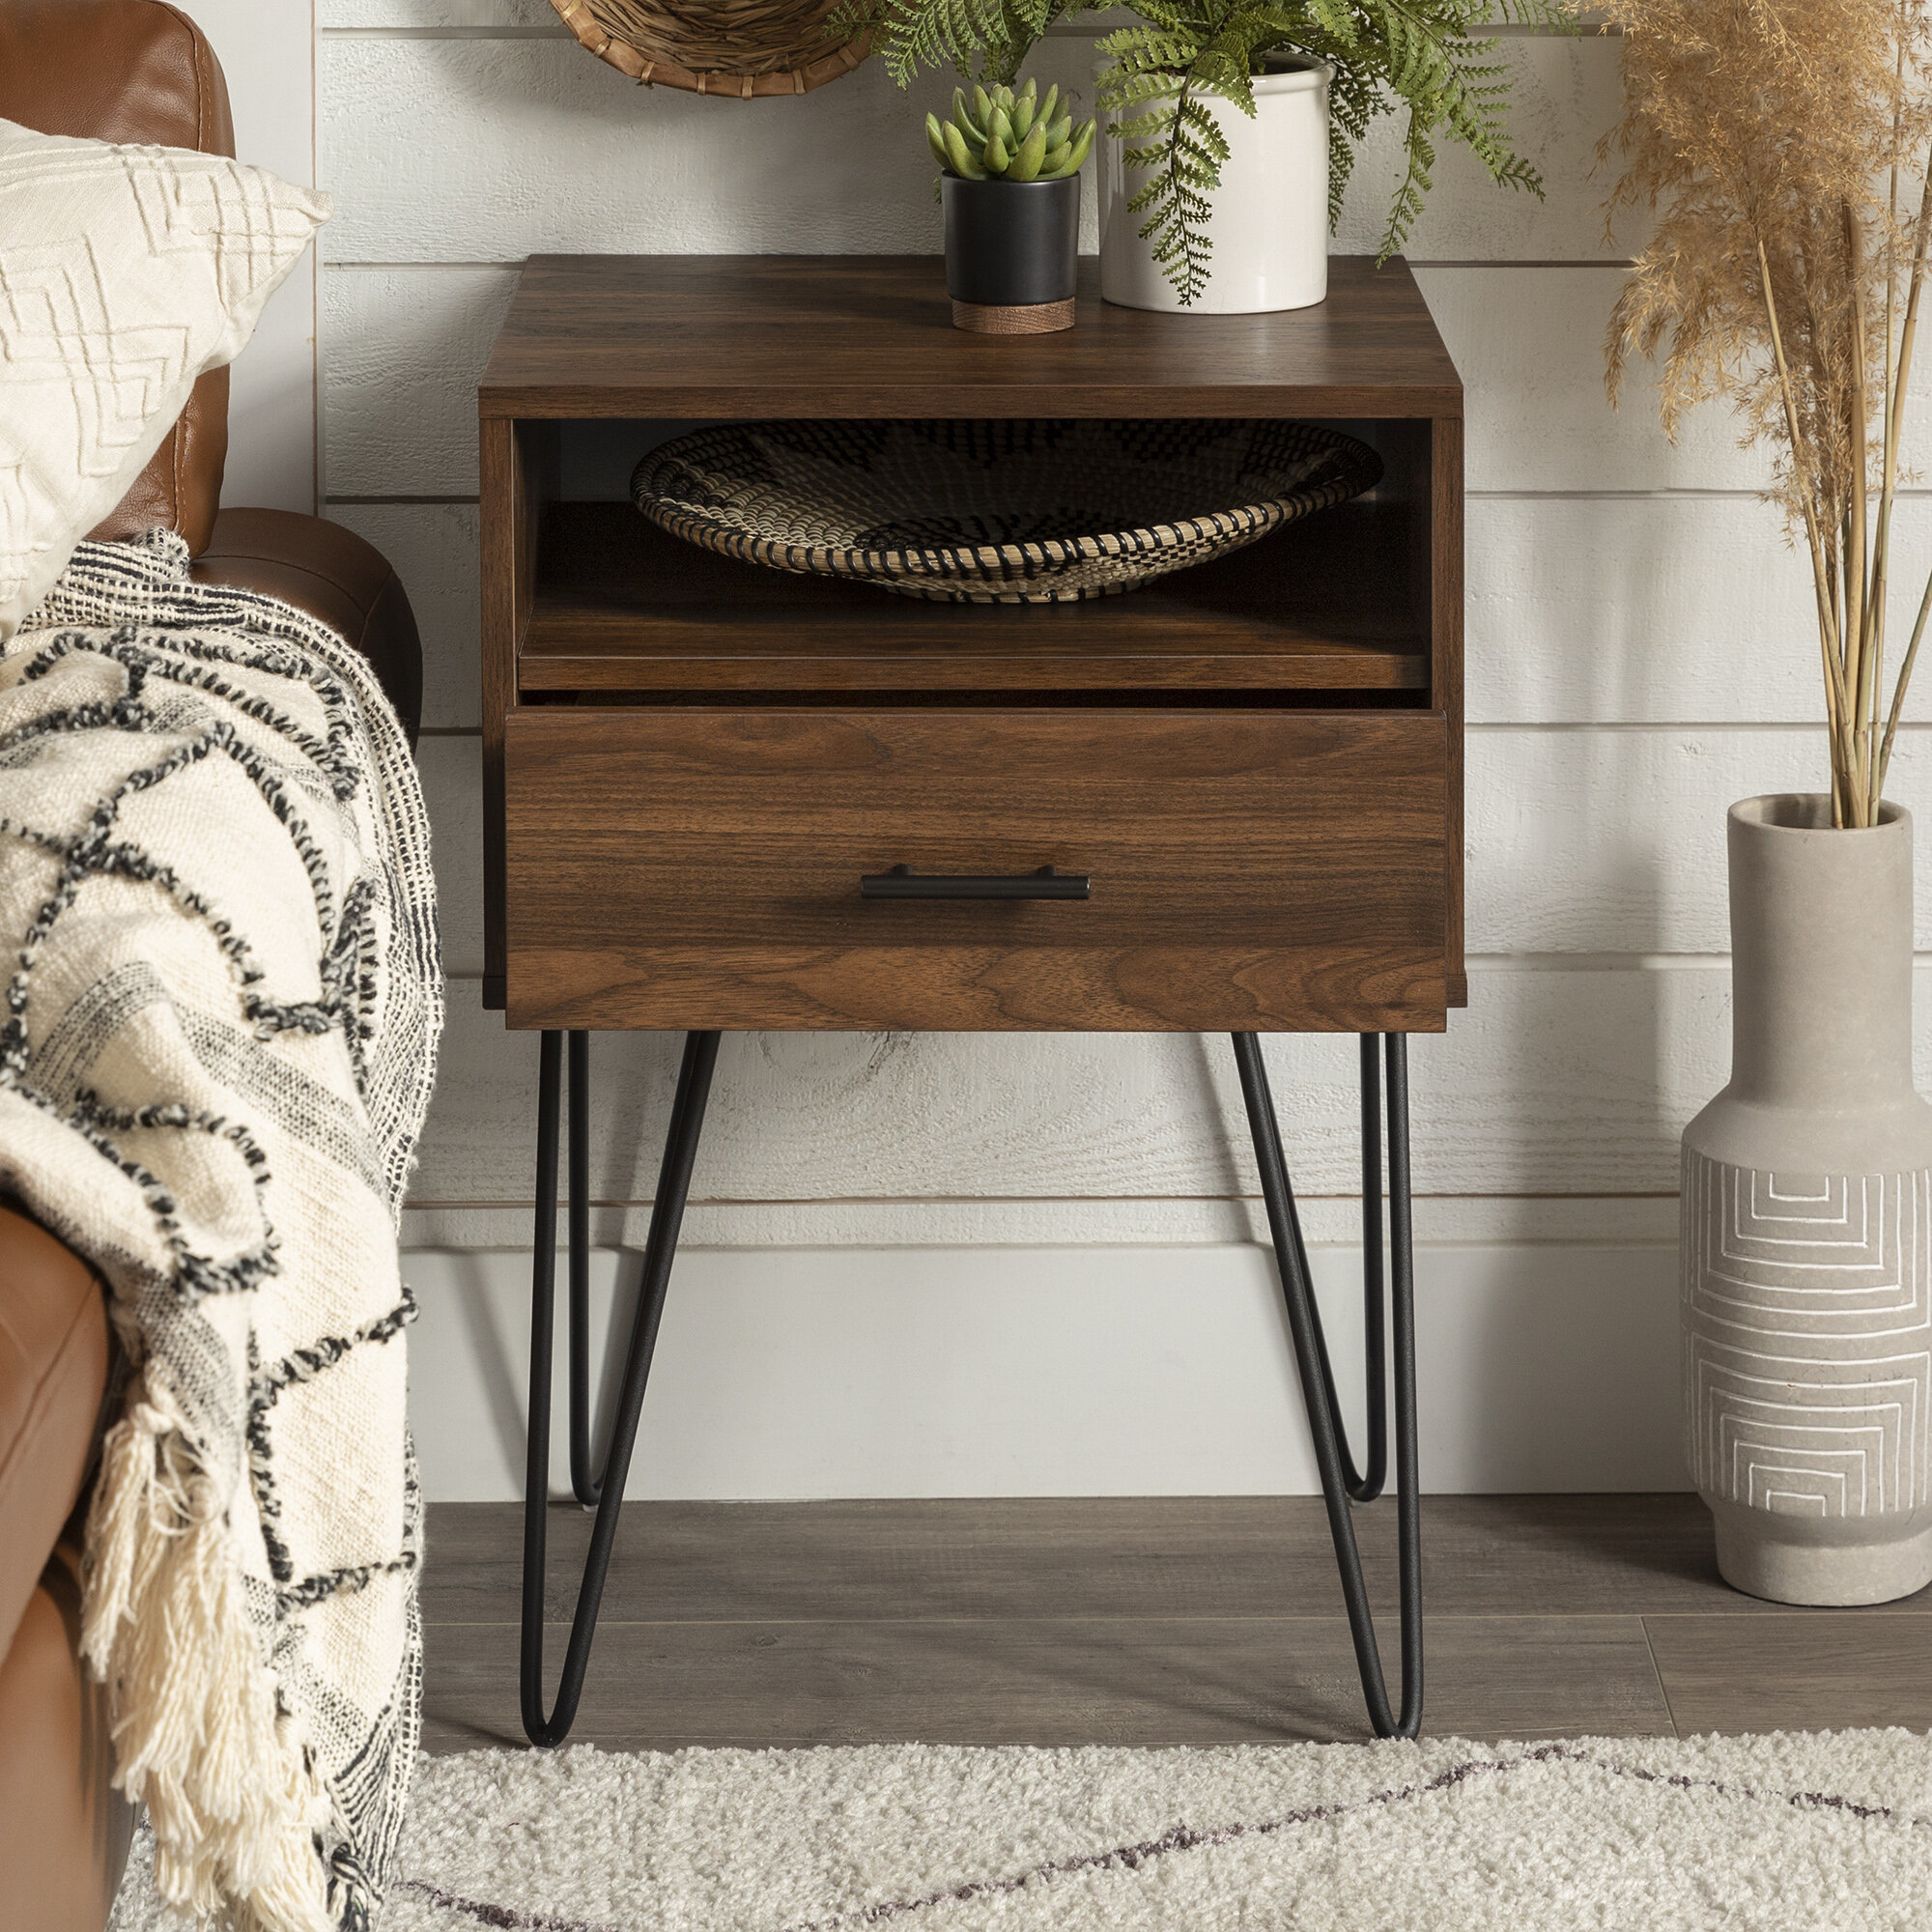 Living Room Furniture Kamiler End Table Industrial Nightstand With Drawer Side Table Mesh Storage Shelf Sofa Table Rustic Furniture Metal Frame For Bedroom Entryway Office Home Classiccakes Co Nz